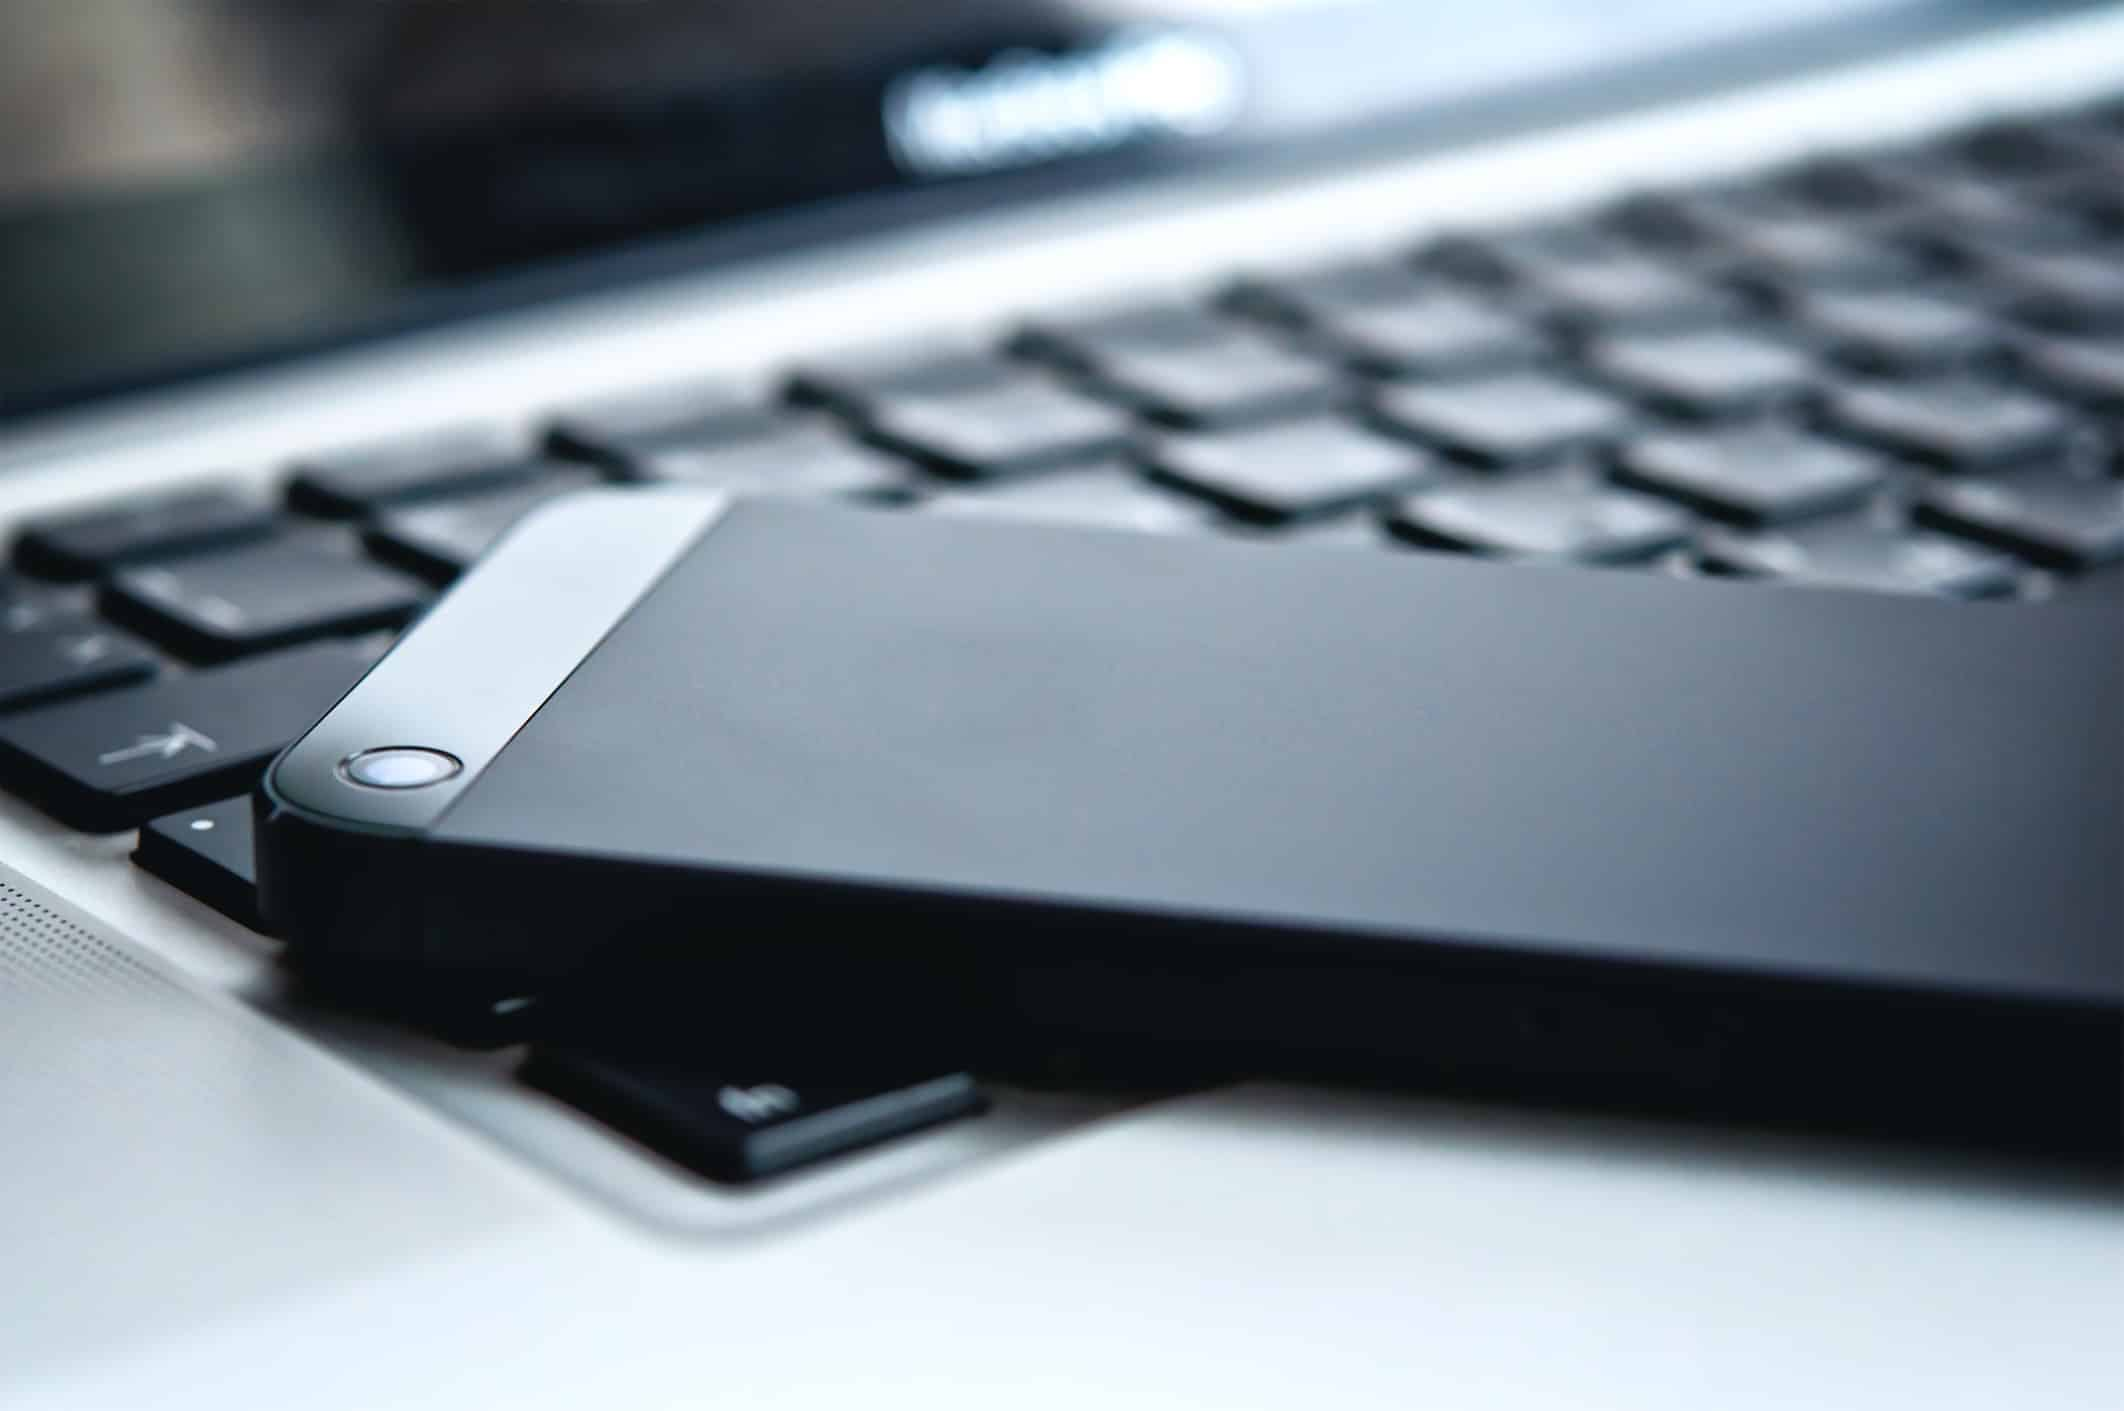 laptop and phone image